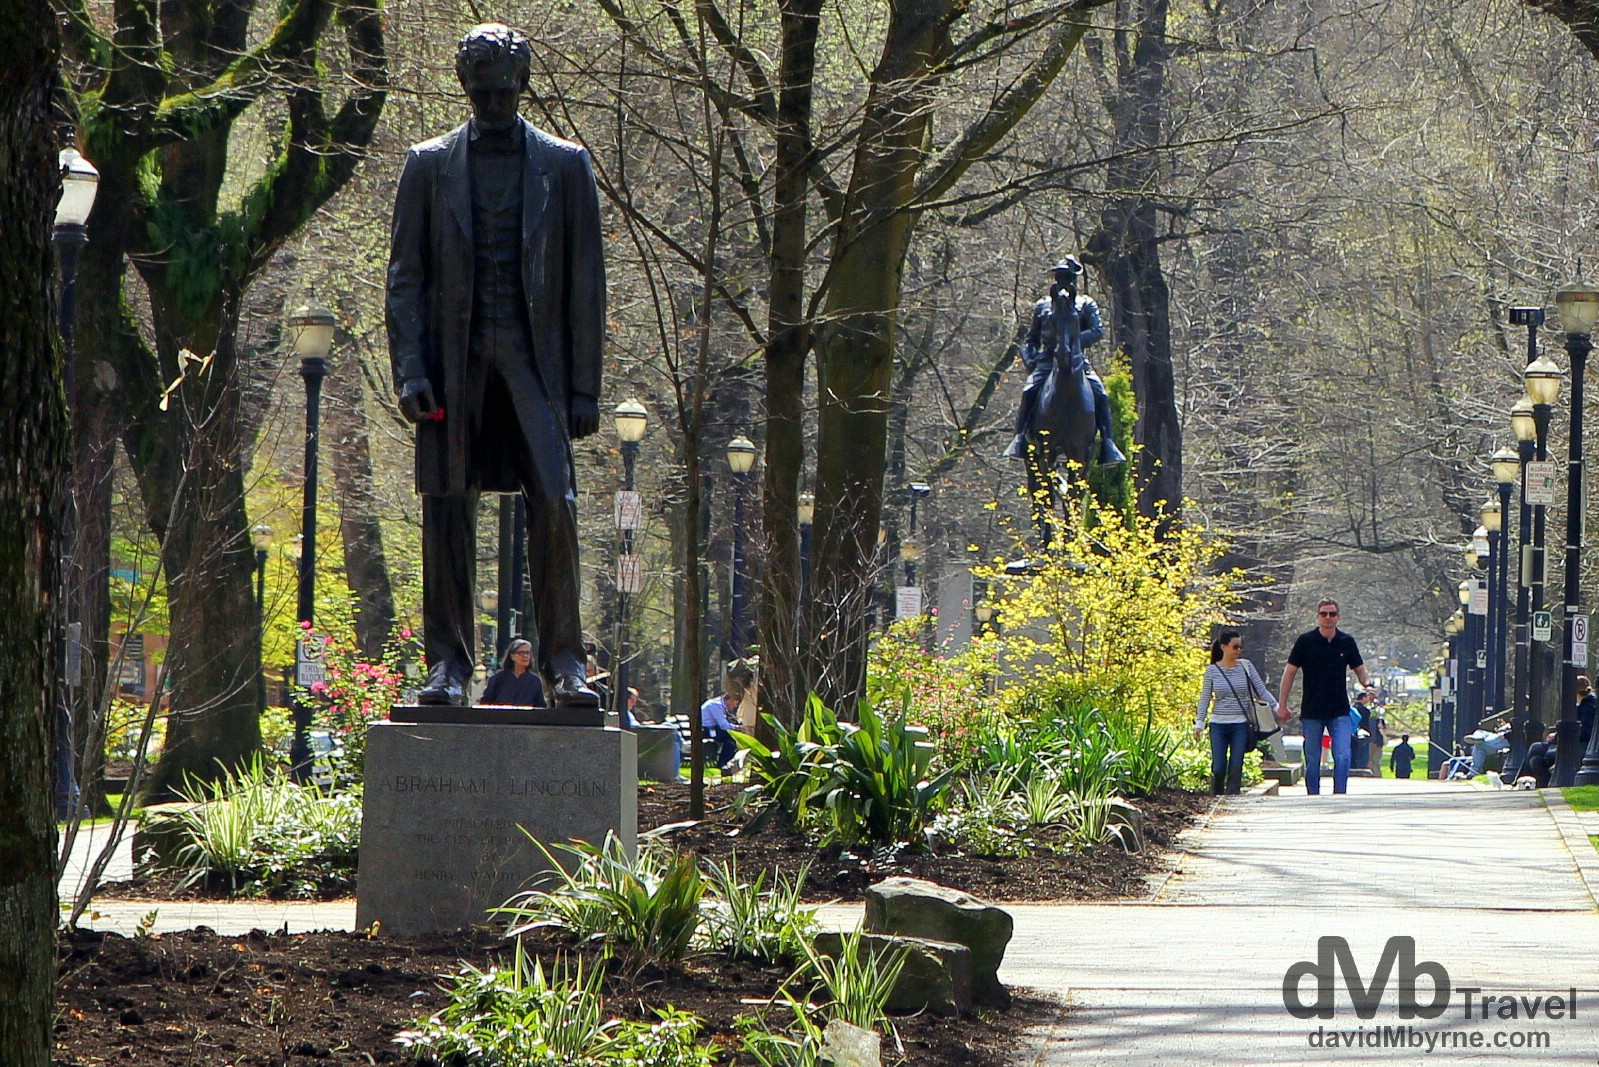 The Abraham Lincoln statue in South Park Blocks, Portland Oregon, USA. March 28, 2013.